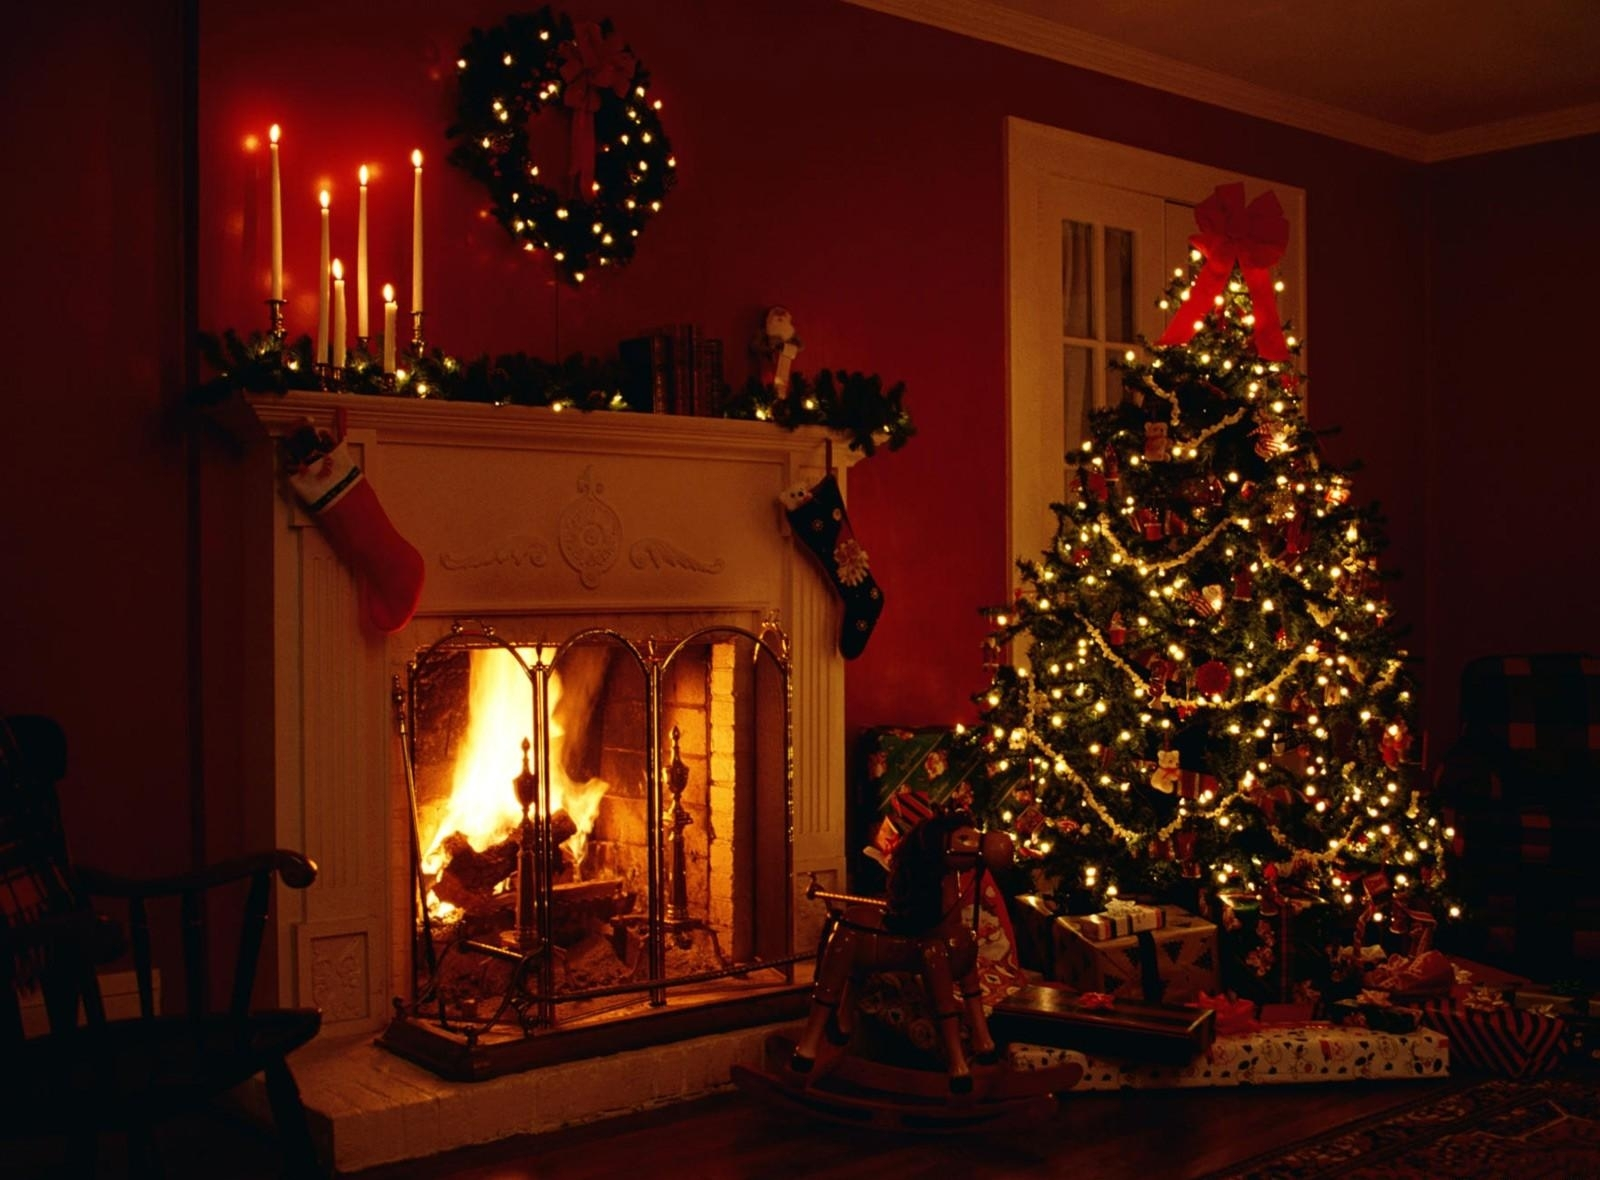 Fireplace clipart holiday Animated Fireplace Clipart Fireplace Christmas